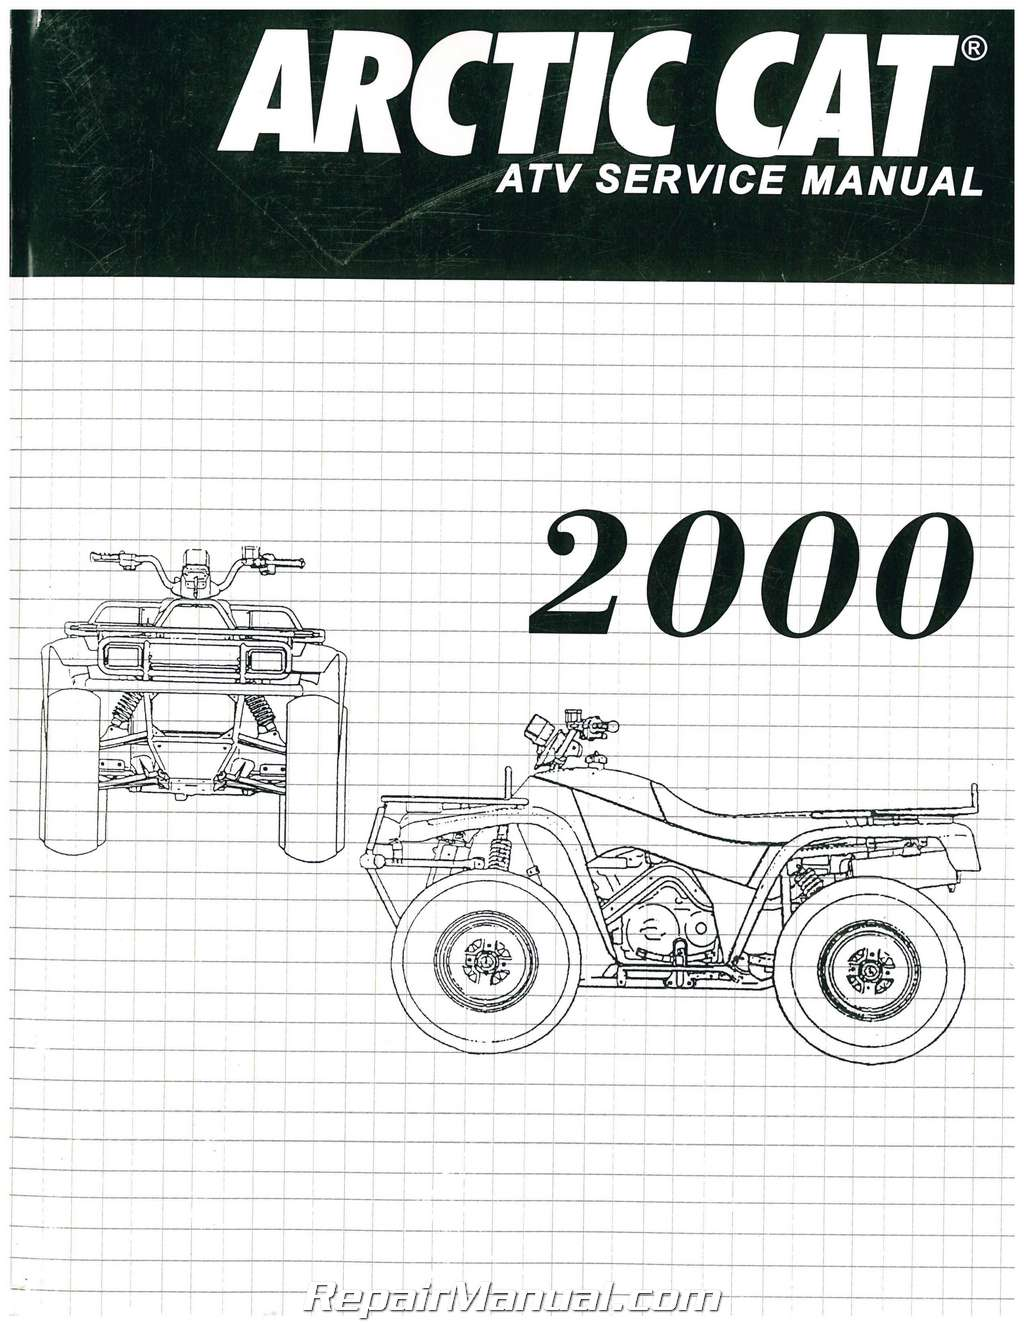 doc01157820160317075822_001  Arctic Cat Wiring Diagram on snowmobile m8,